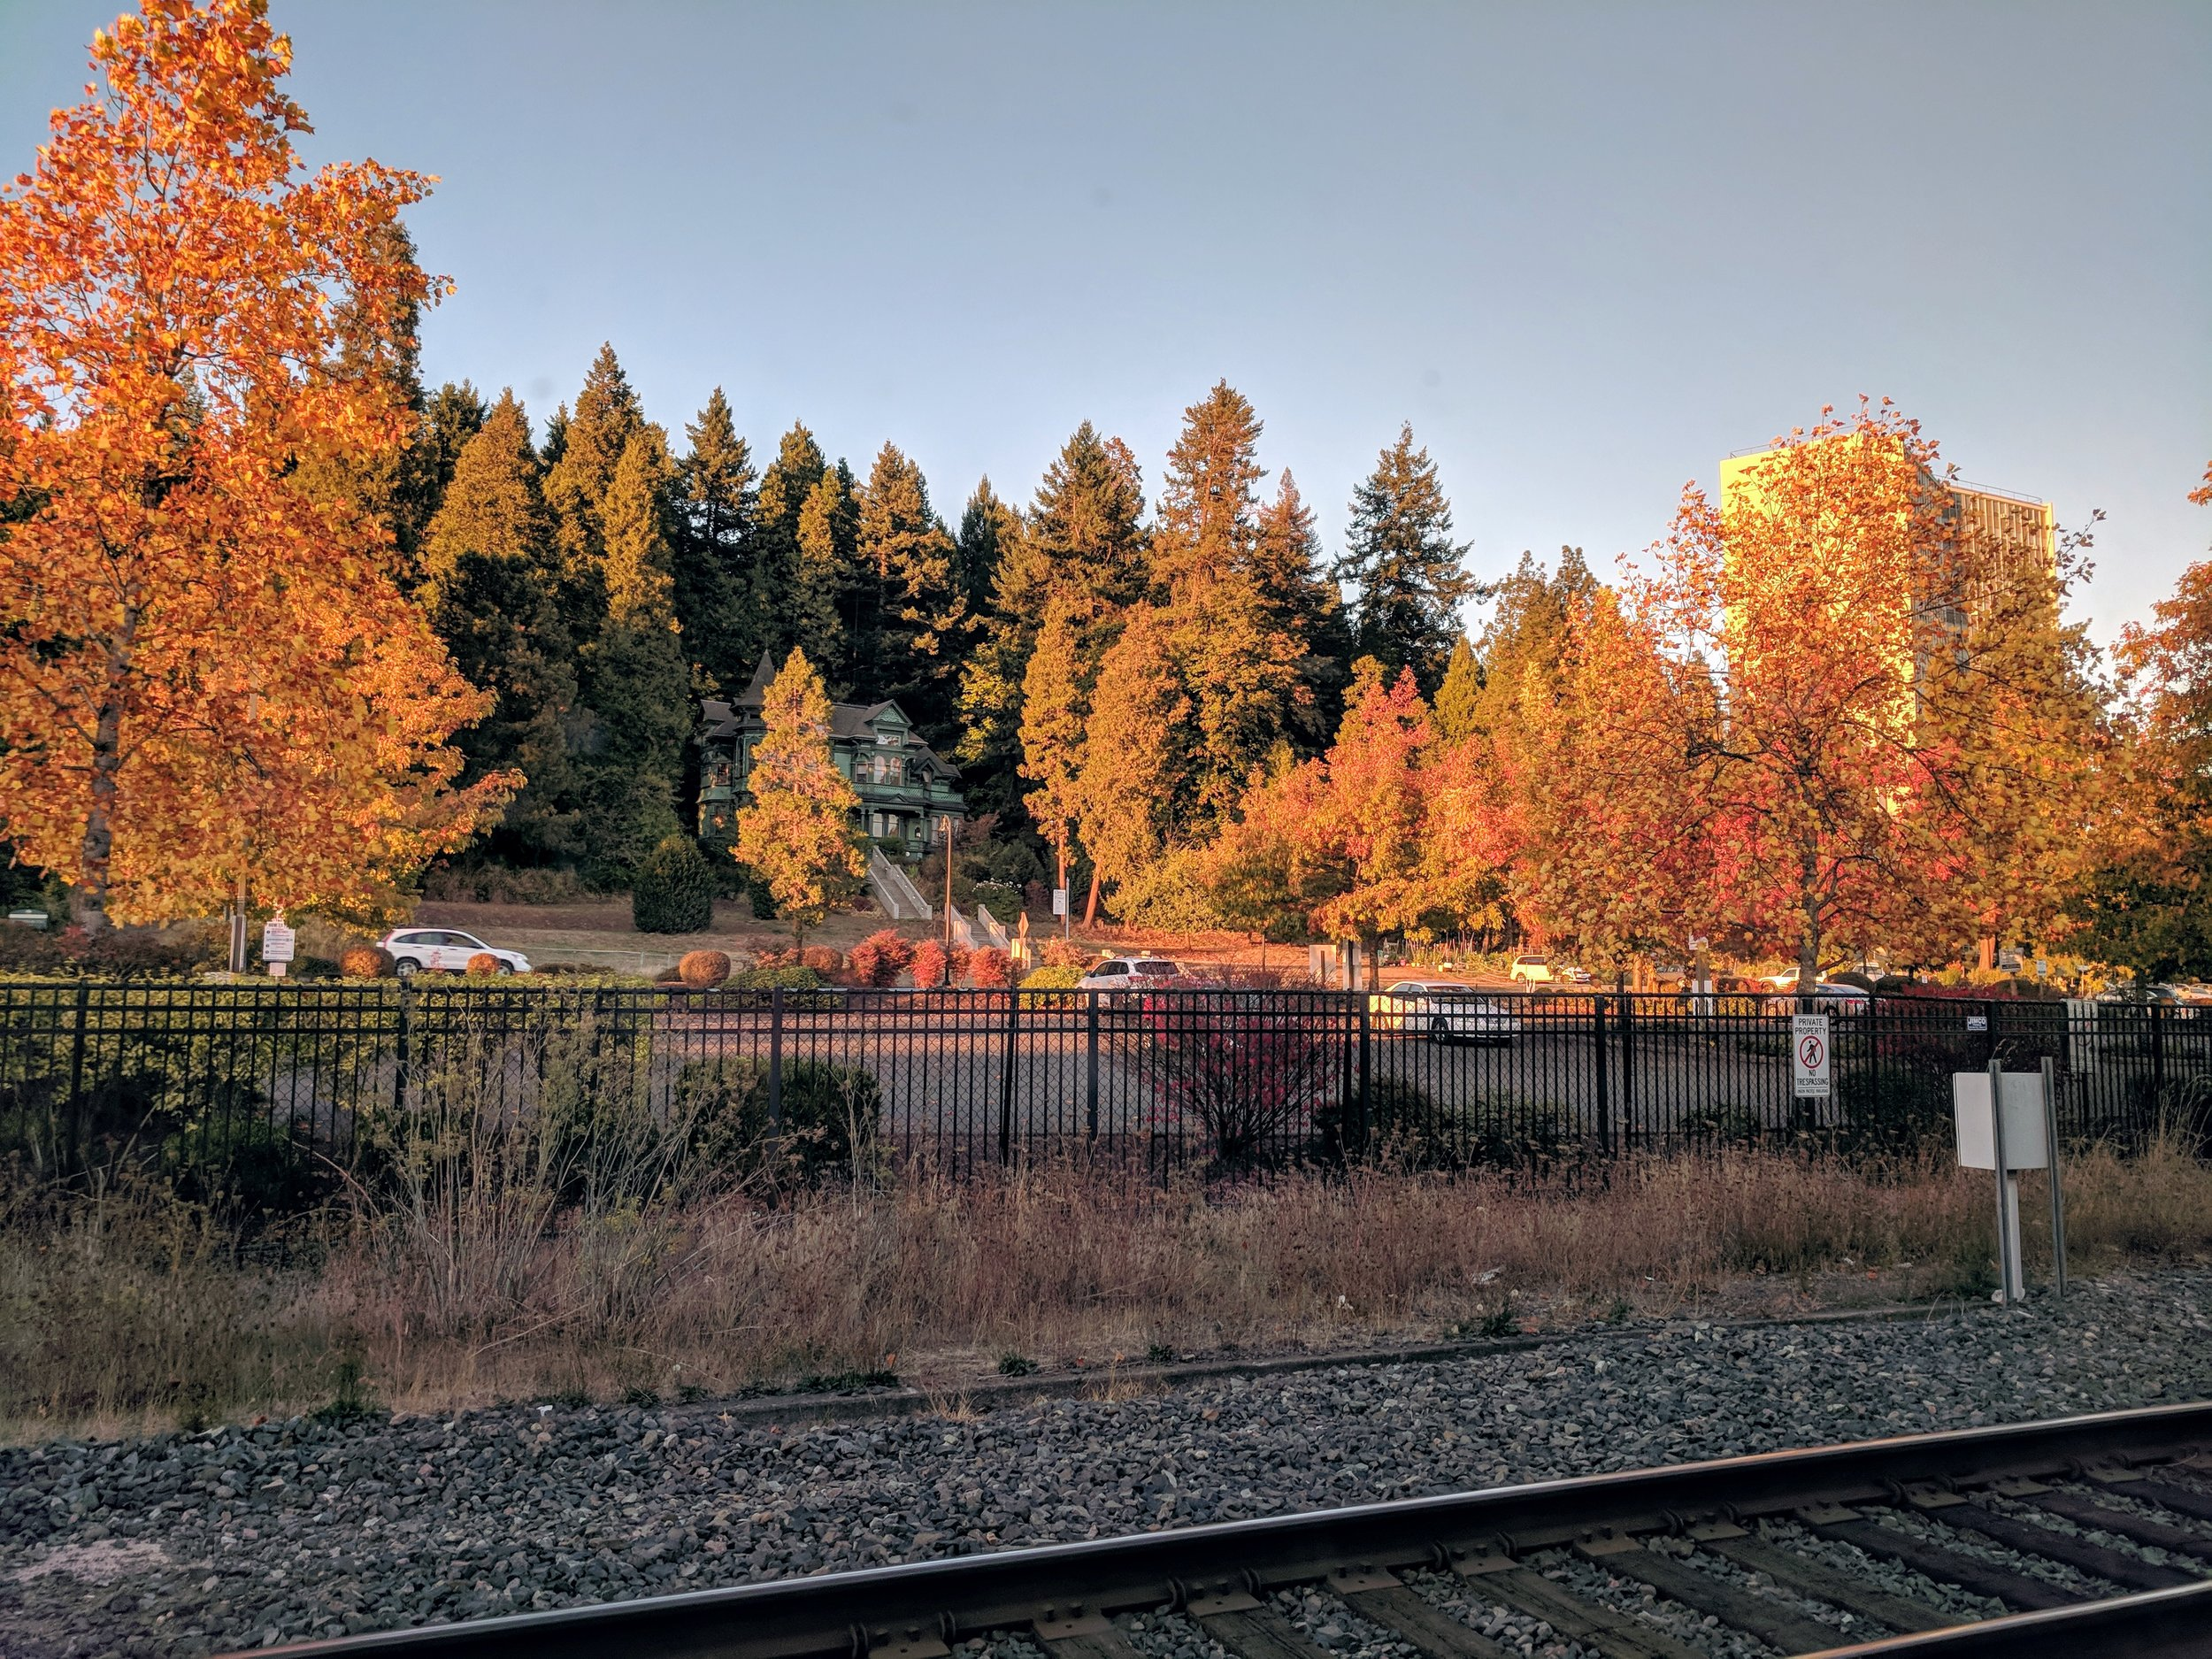 The view from the Amtrak station in Eugene, OR, facing west.